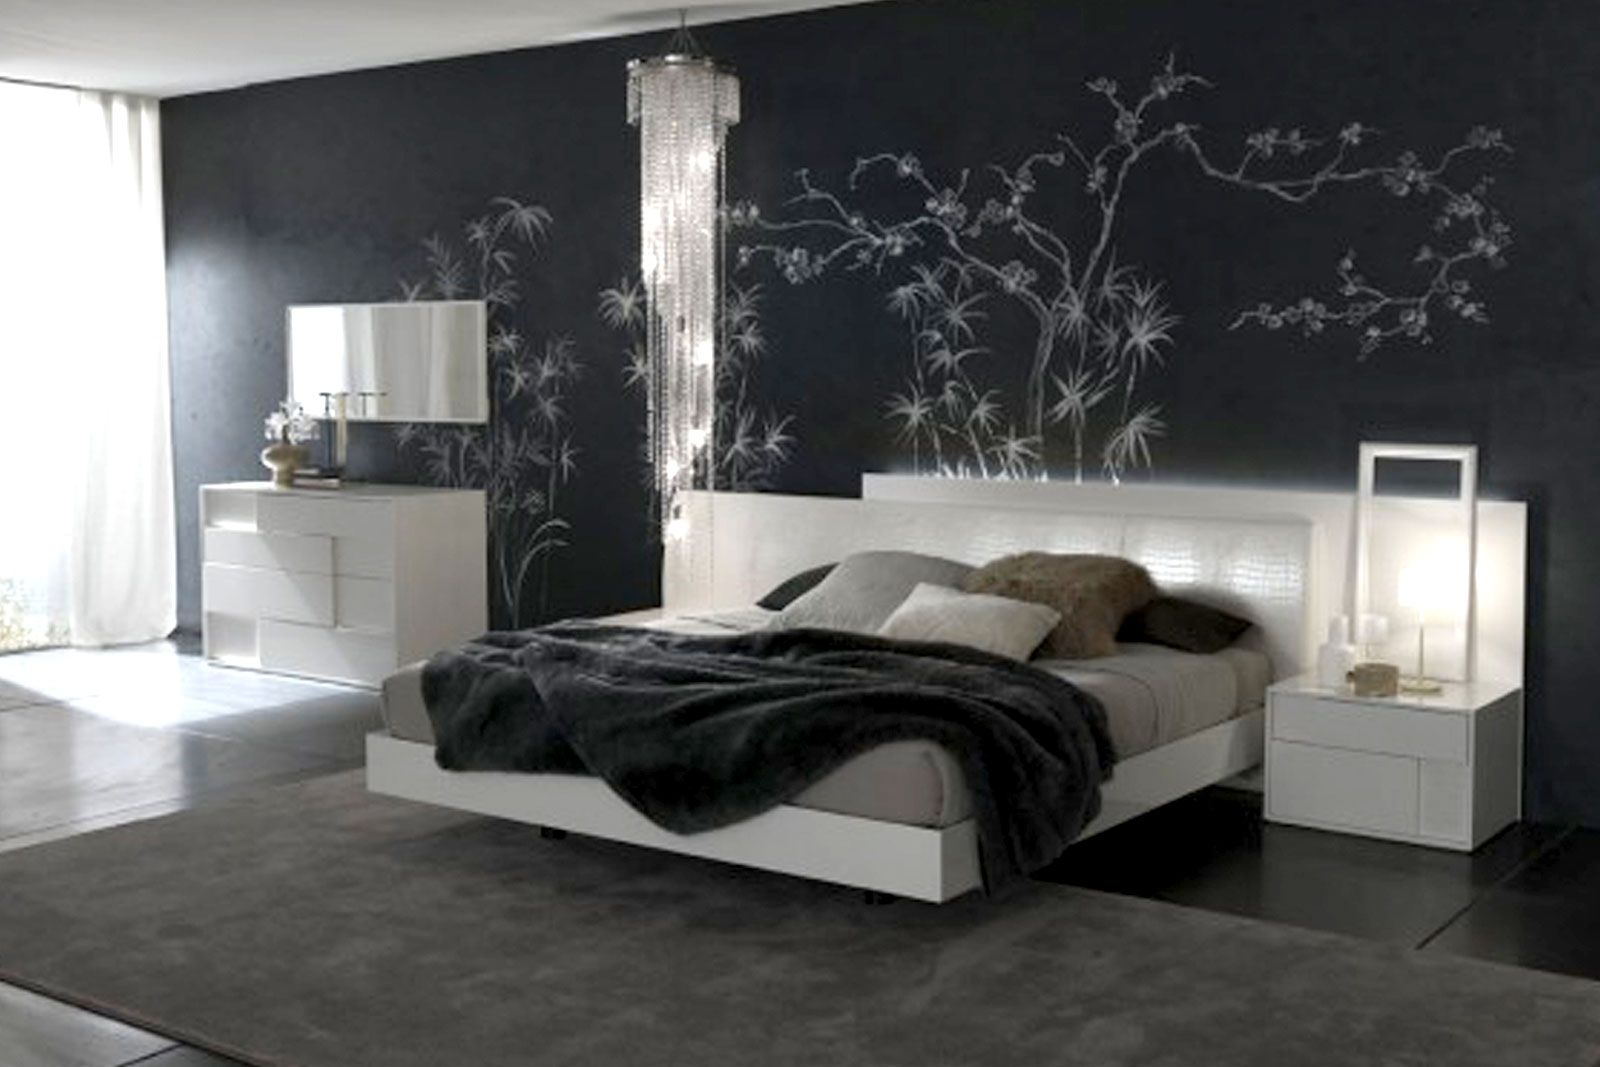 Interior design center inspiration for Bedroom ideas silver